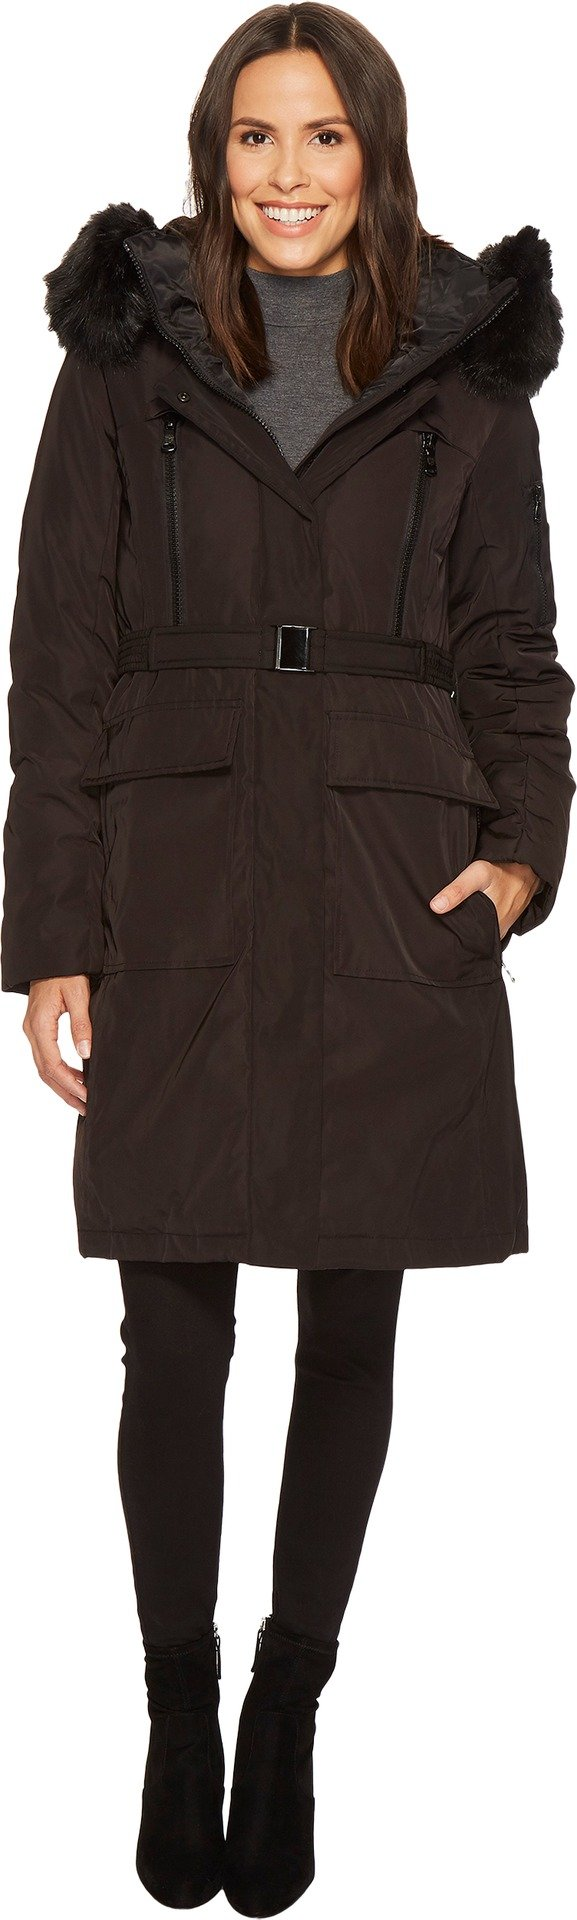 Vince Camuto Womens Belted Long Coat with Faux Fur Detail N8441 Black XL (US 16) One Size